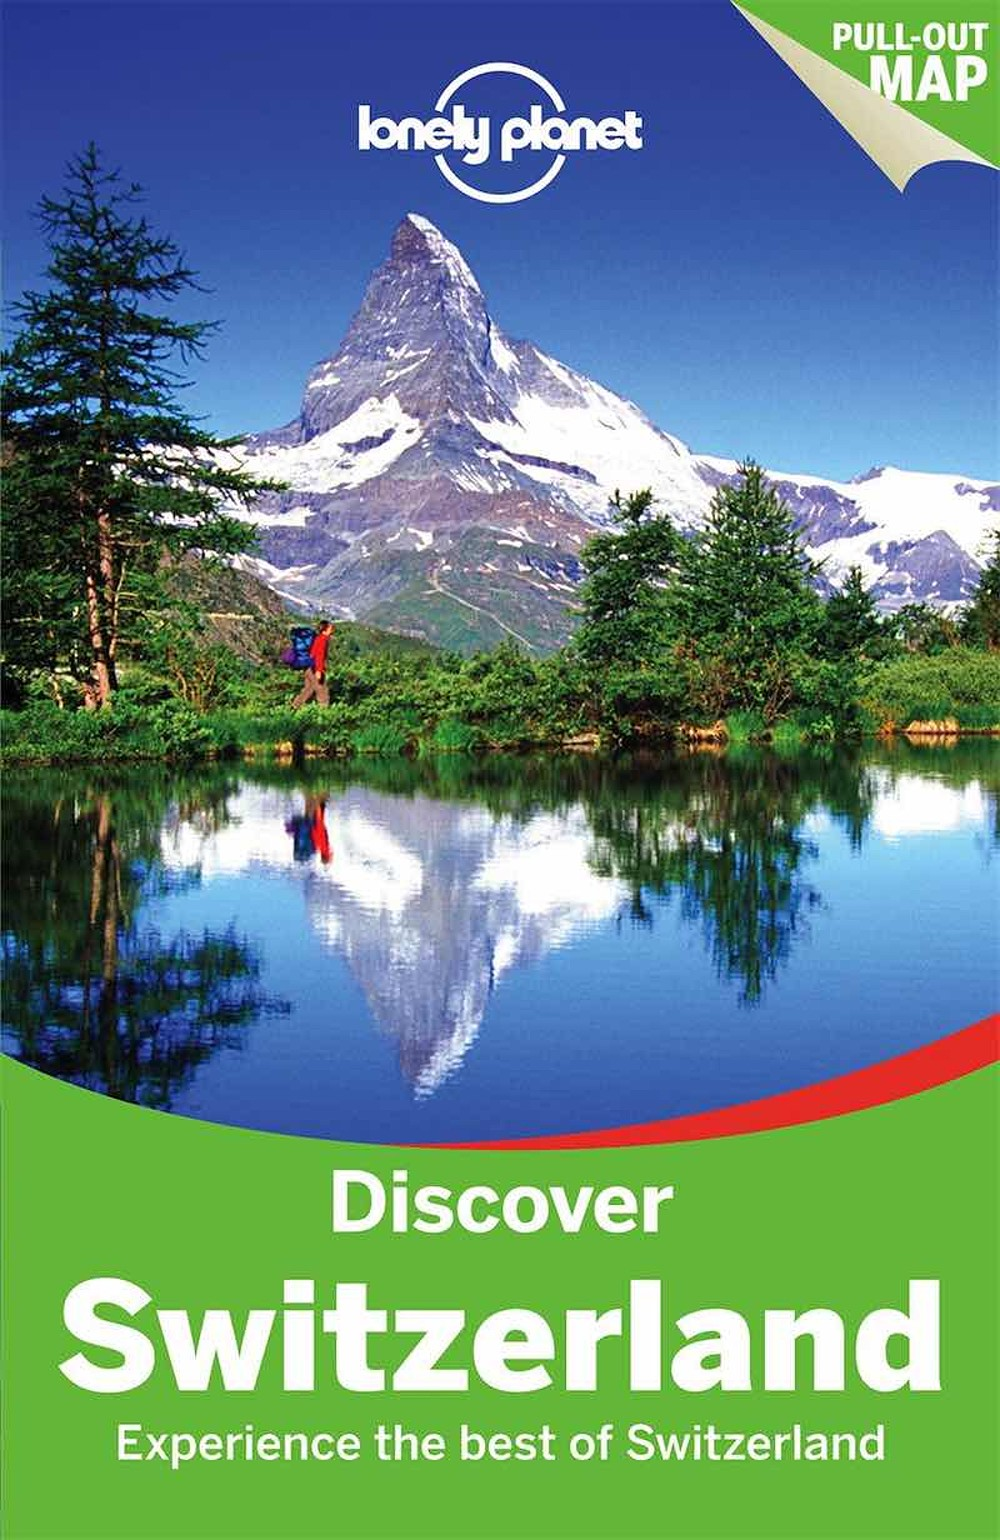 Lonely Planet Switzerland Discover 2.